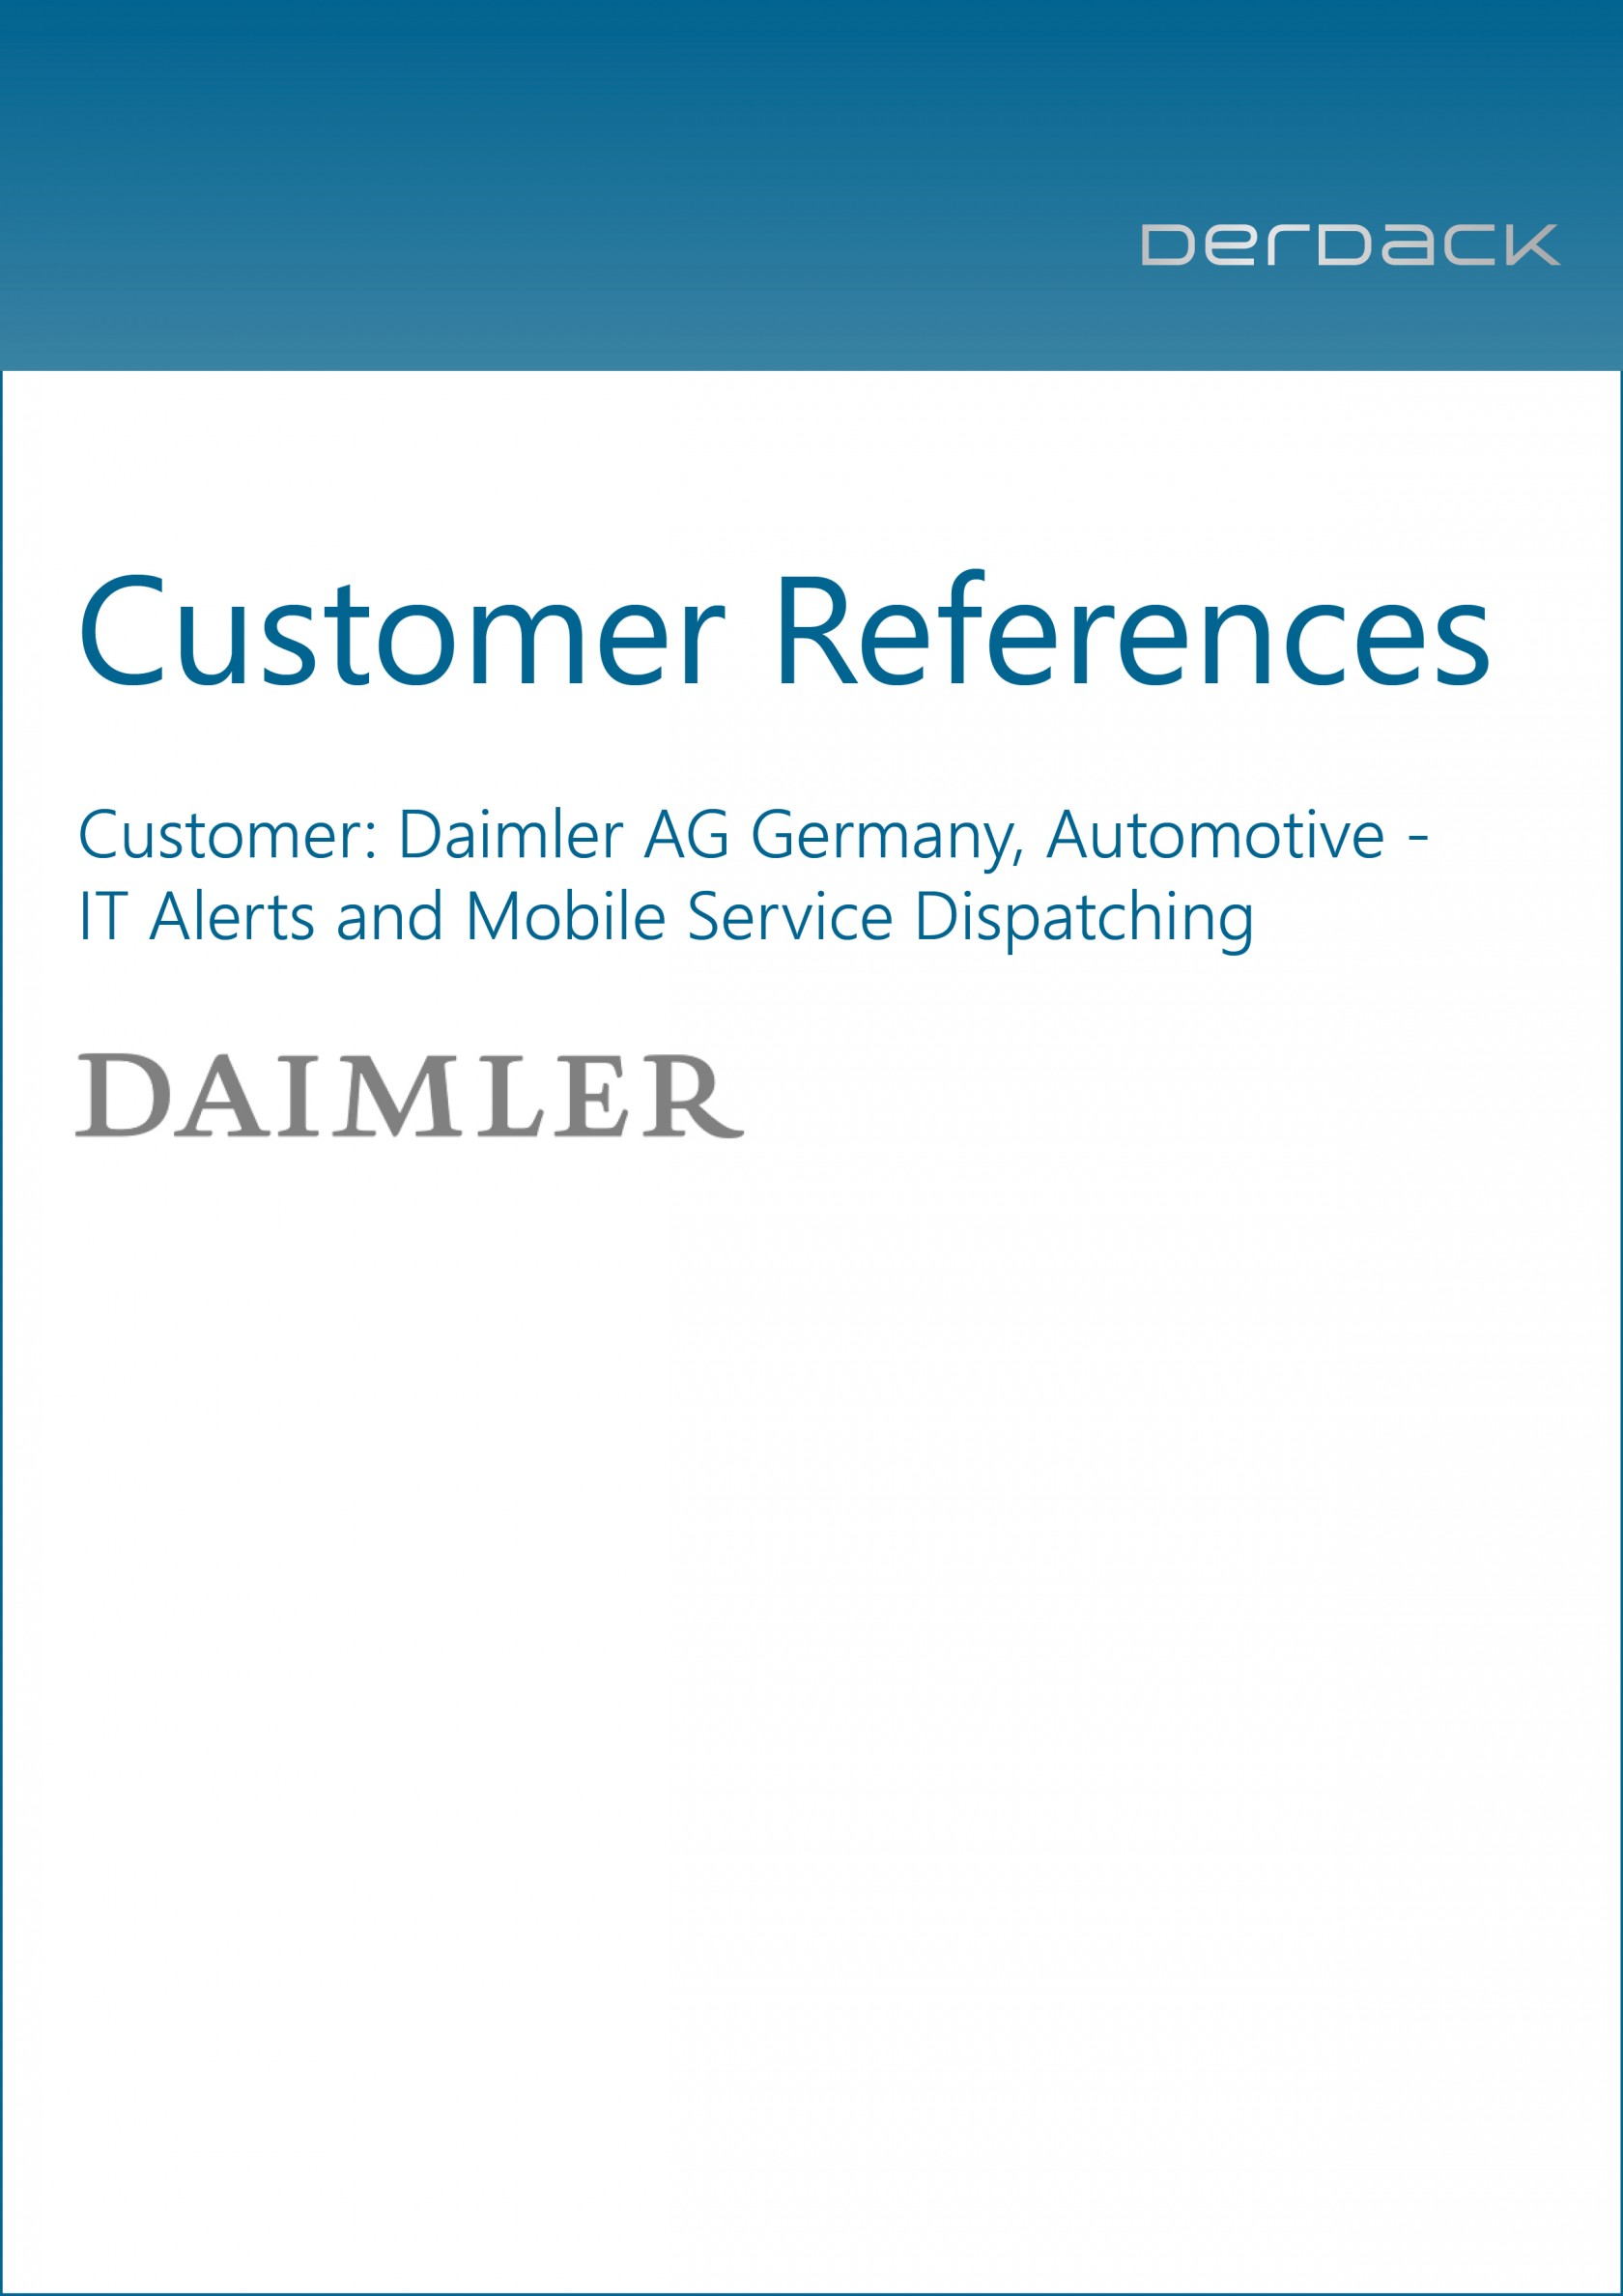 Derdack Customer Reference